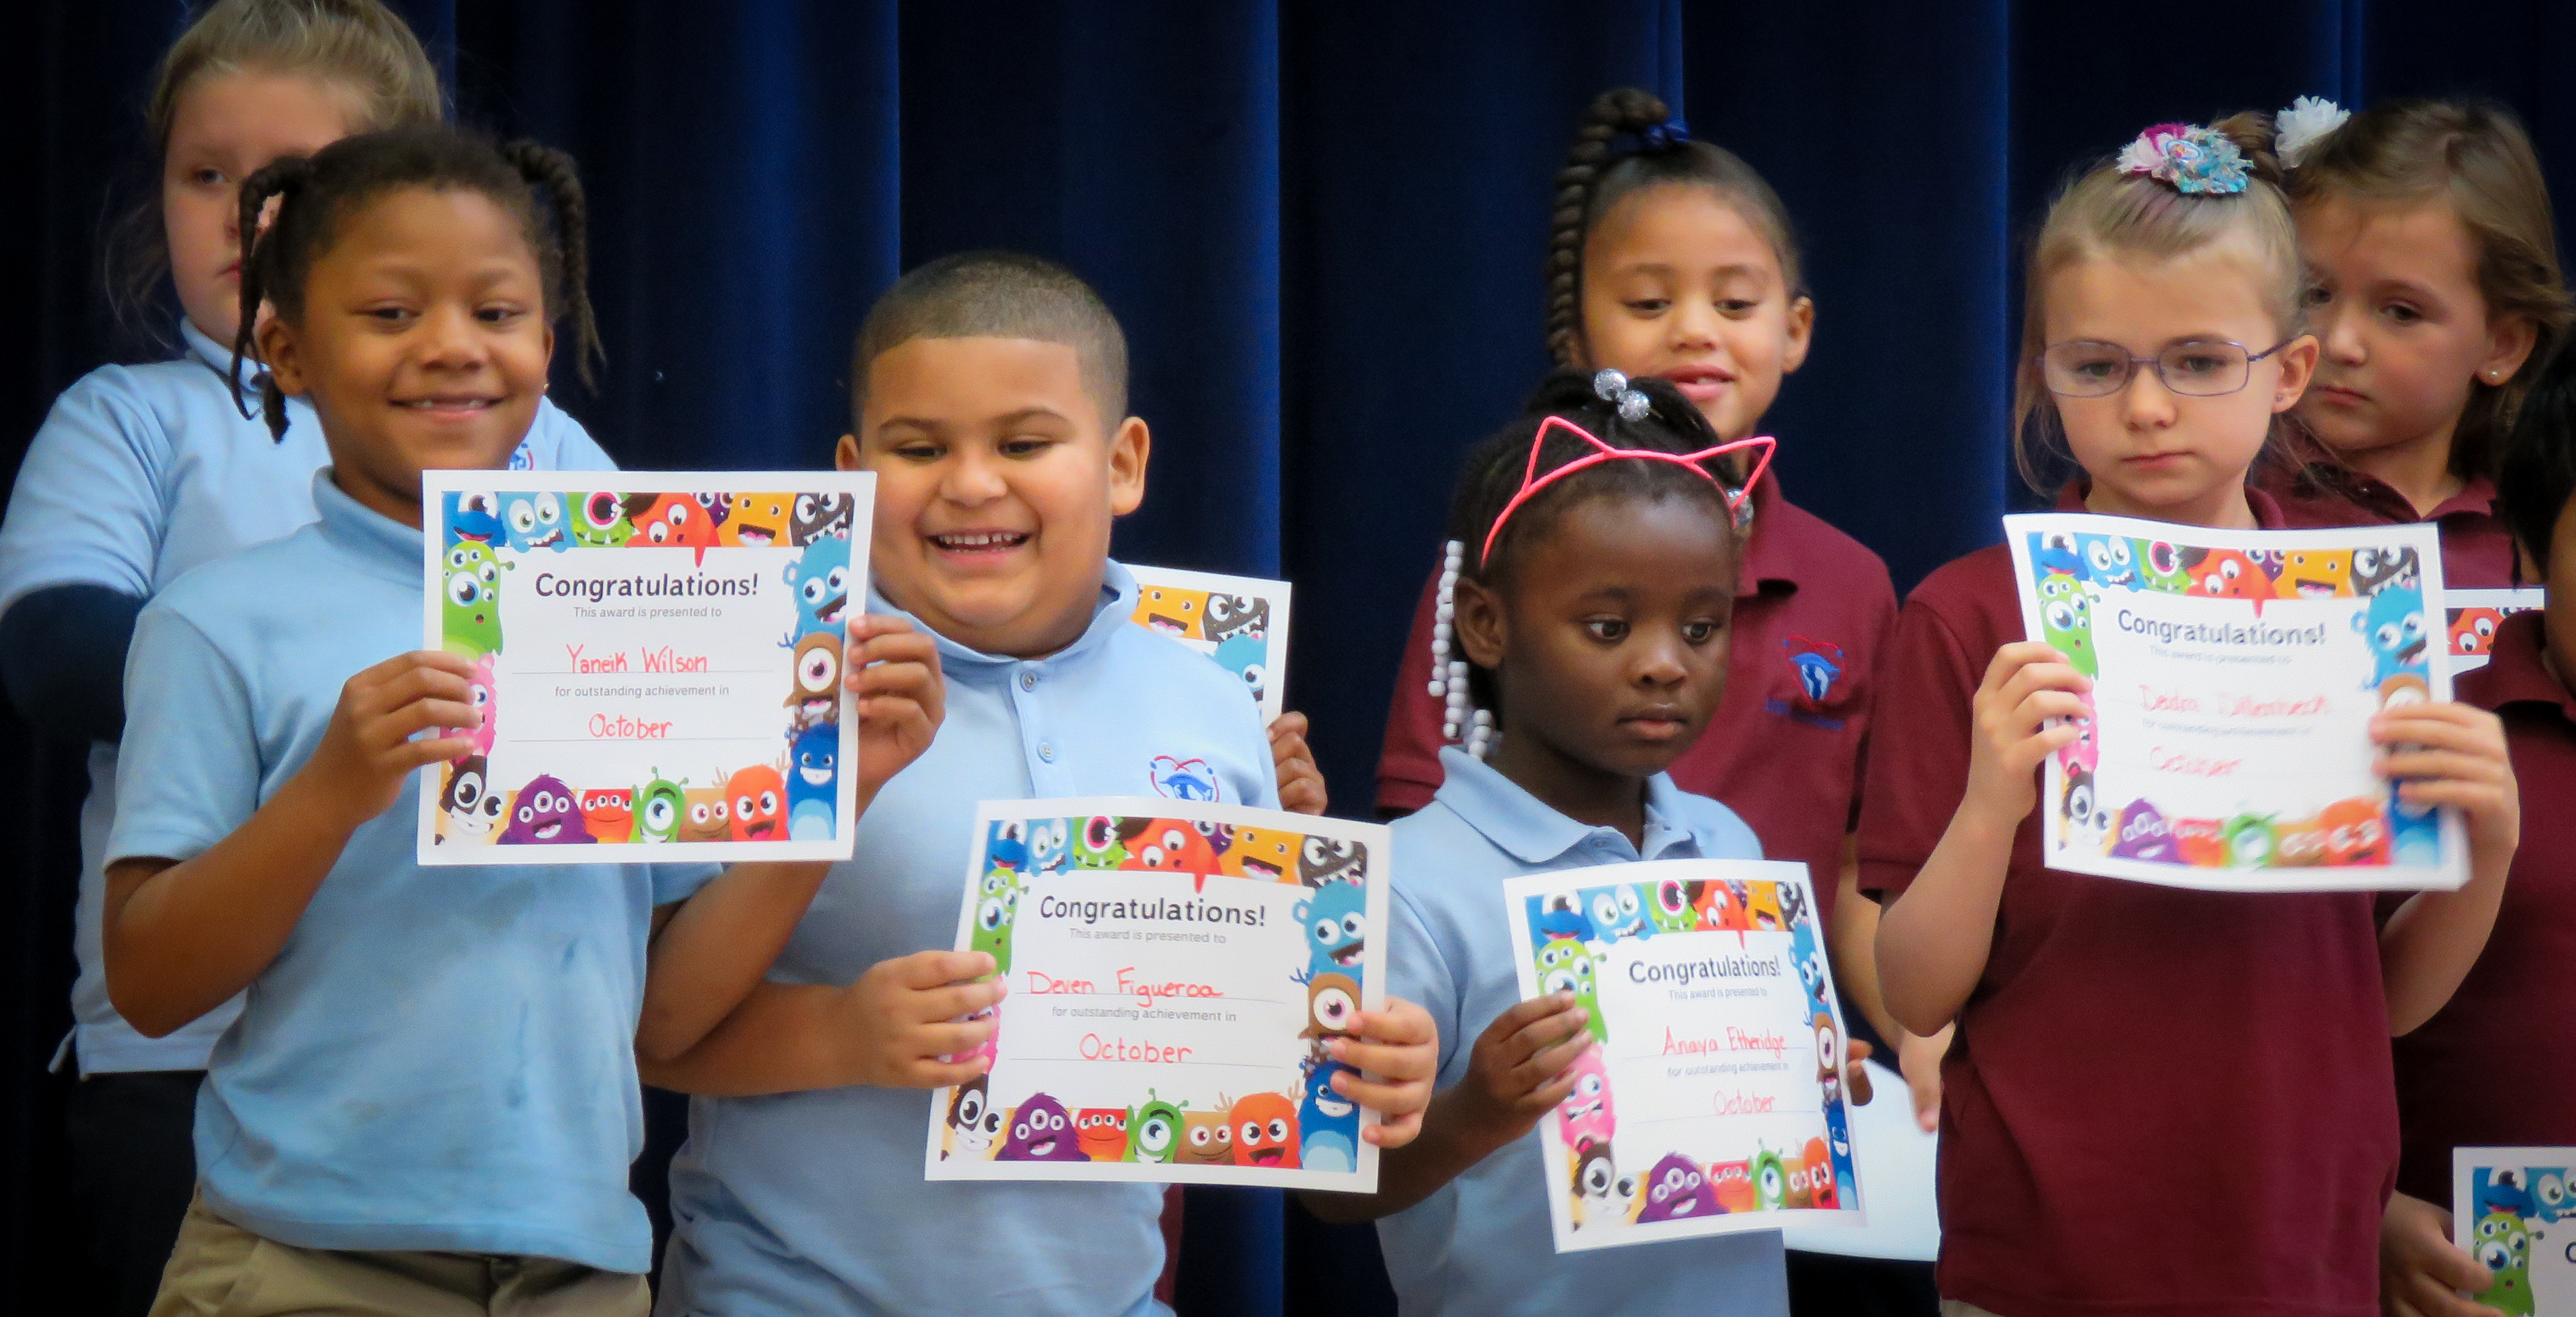 November Awards Ceremony at #UASCS Elementary